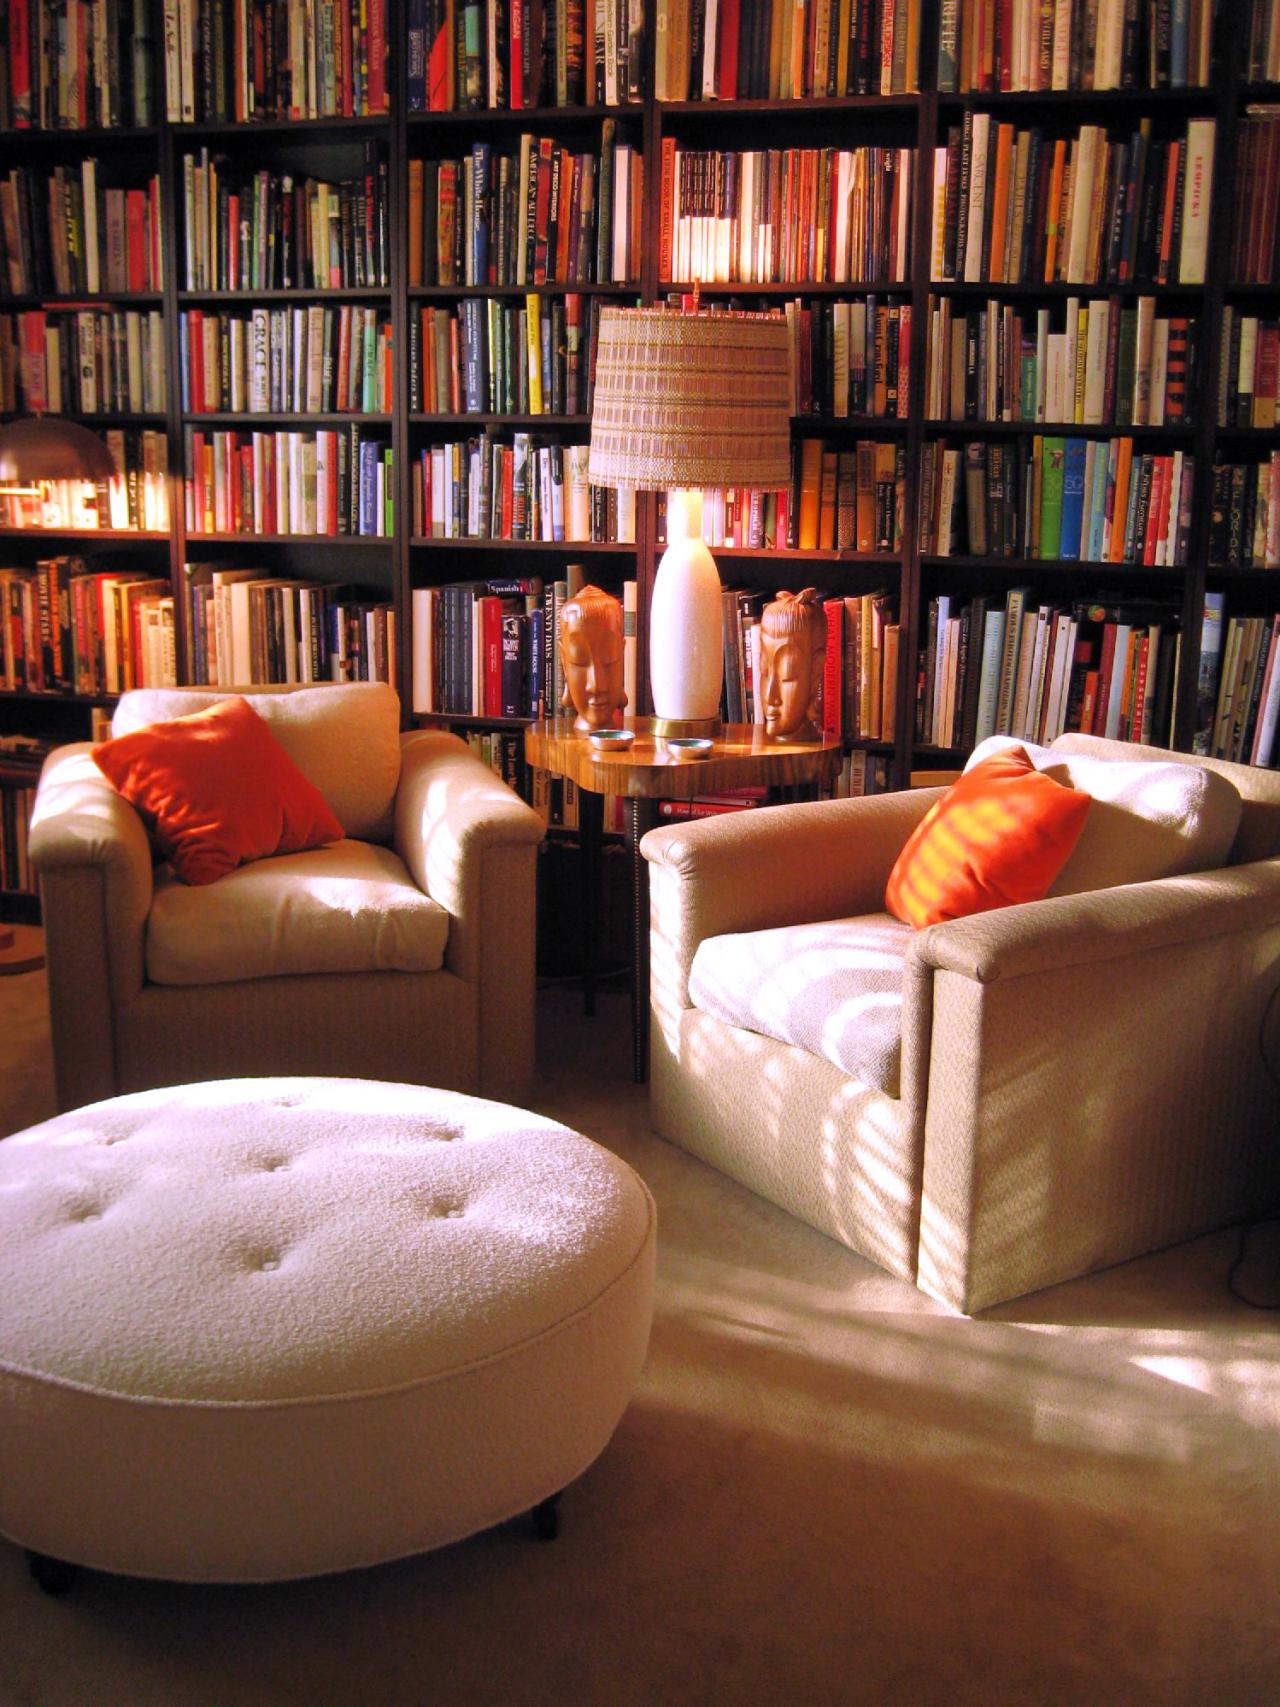 12 dreamy home libraries decorating and design ideas for interior rooms hgtv - Books on home design ...